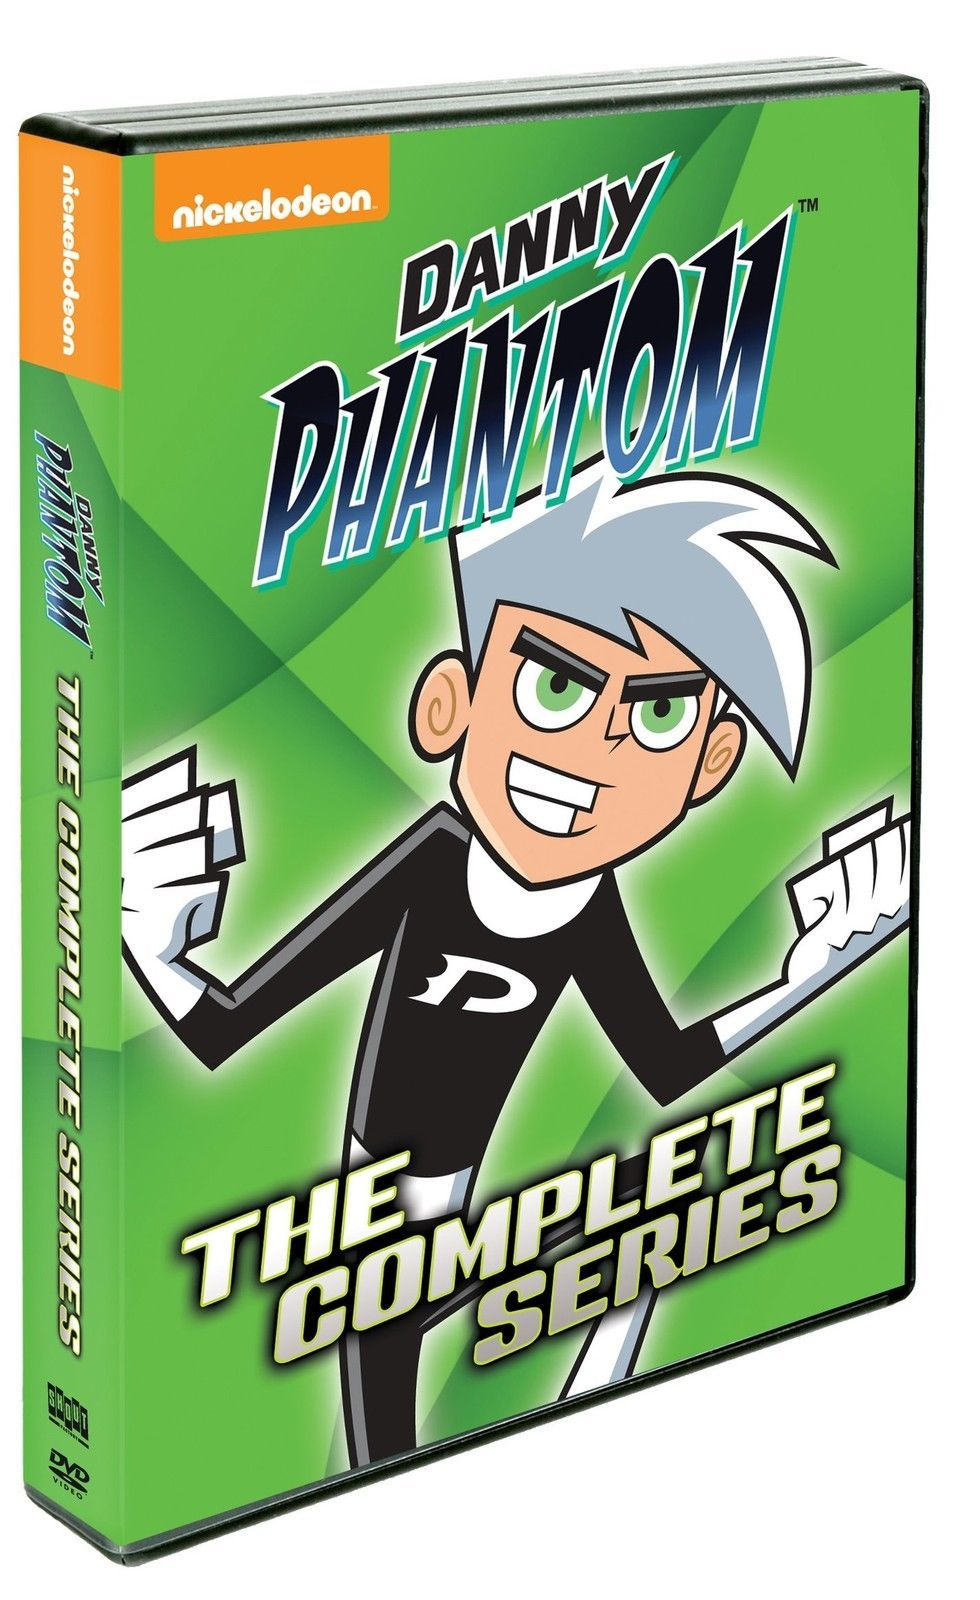 Danny Phantom: The Complete Series (DVD Set) New TV Cartoon Show